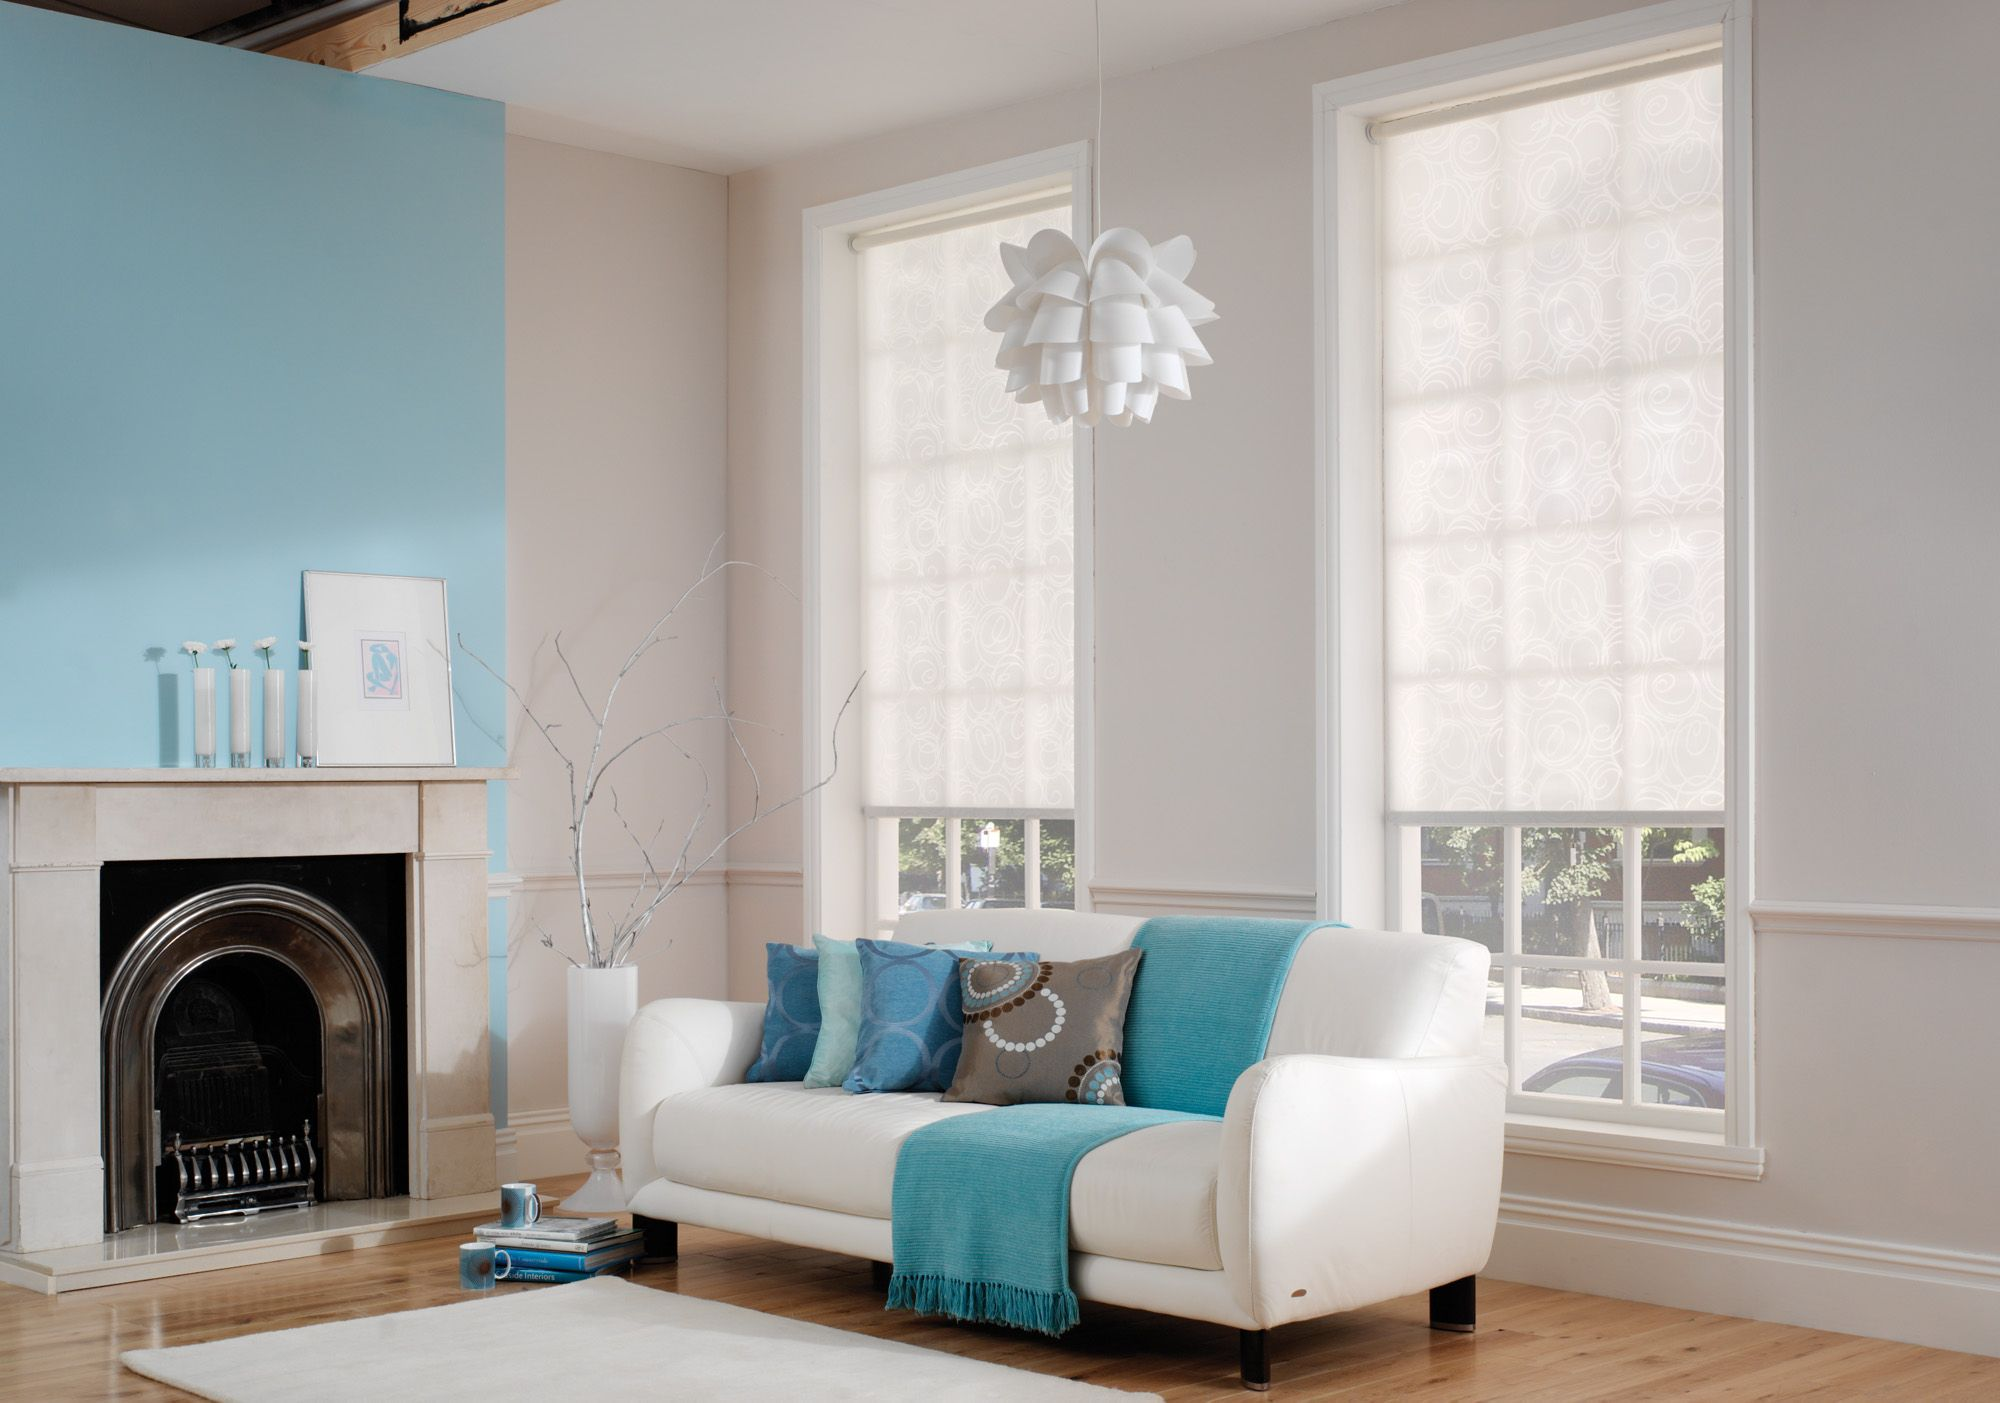 Swirling Patterned Sheer White Roller Blinds In A